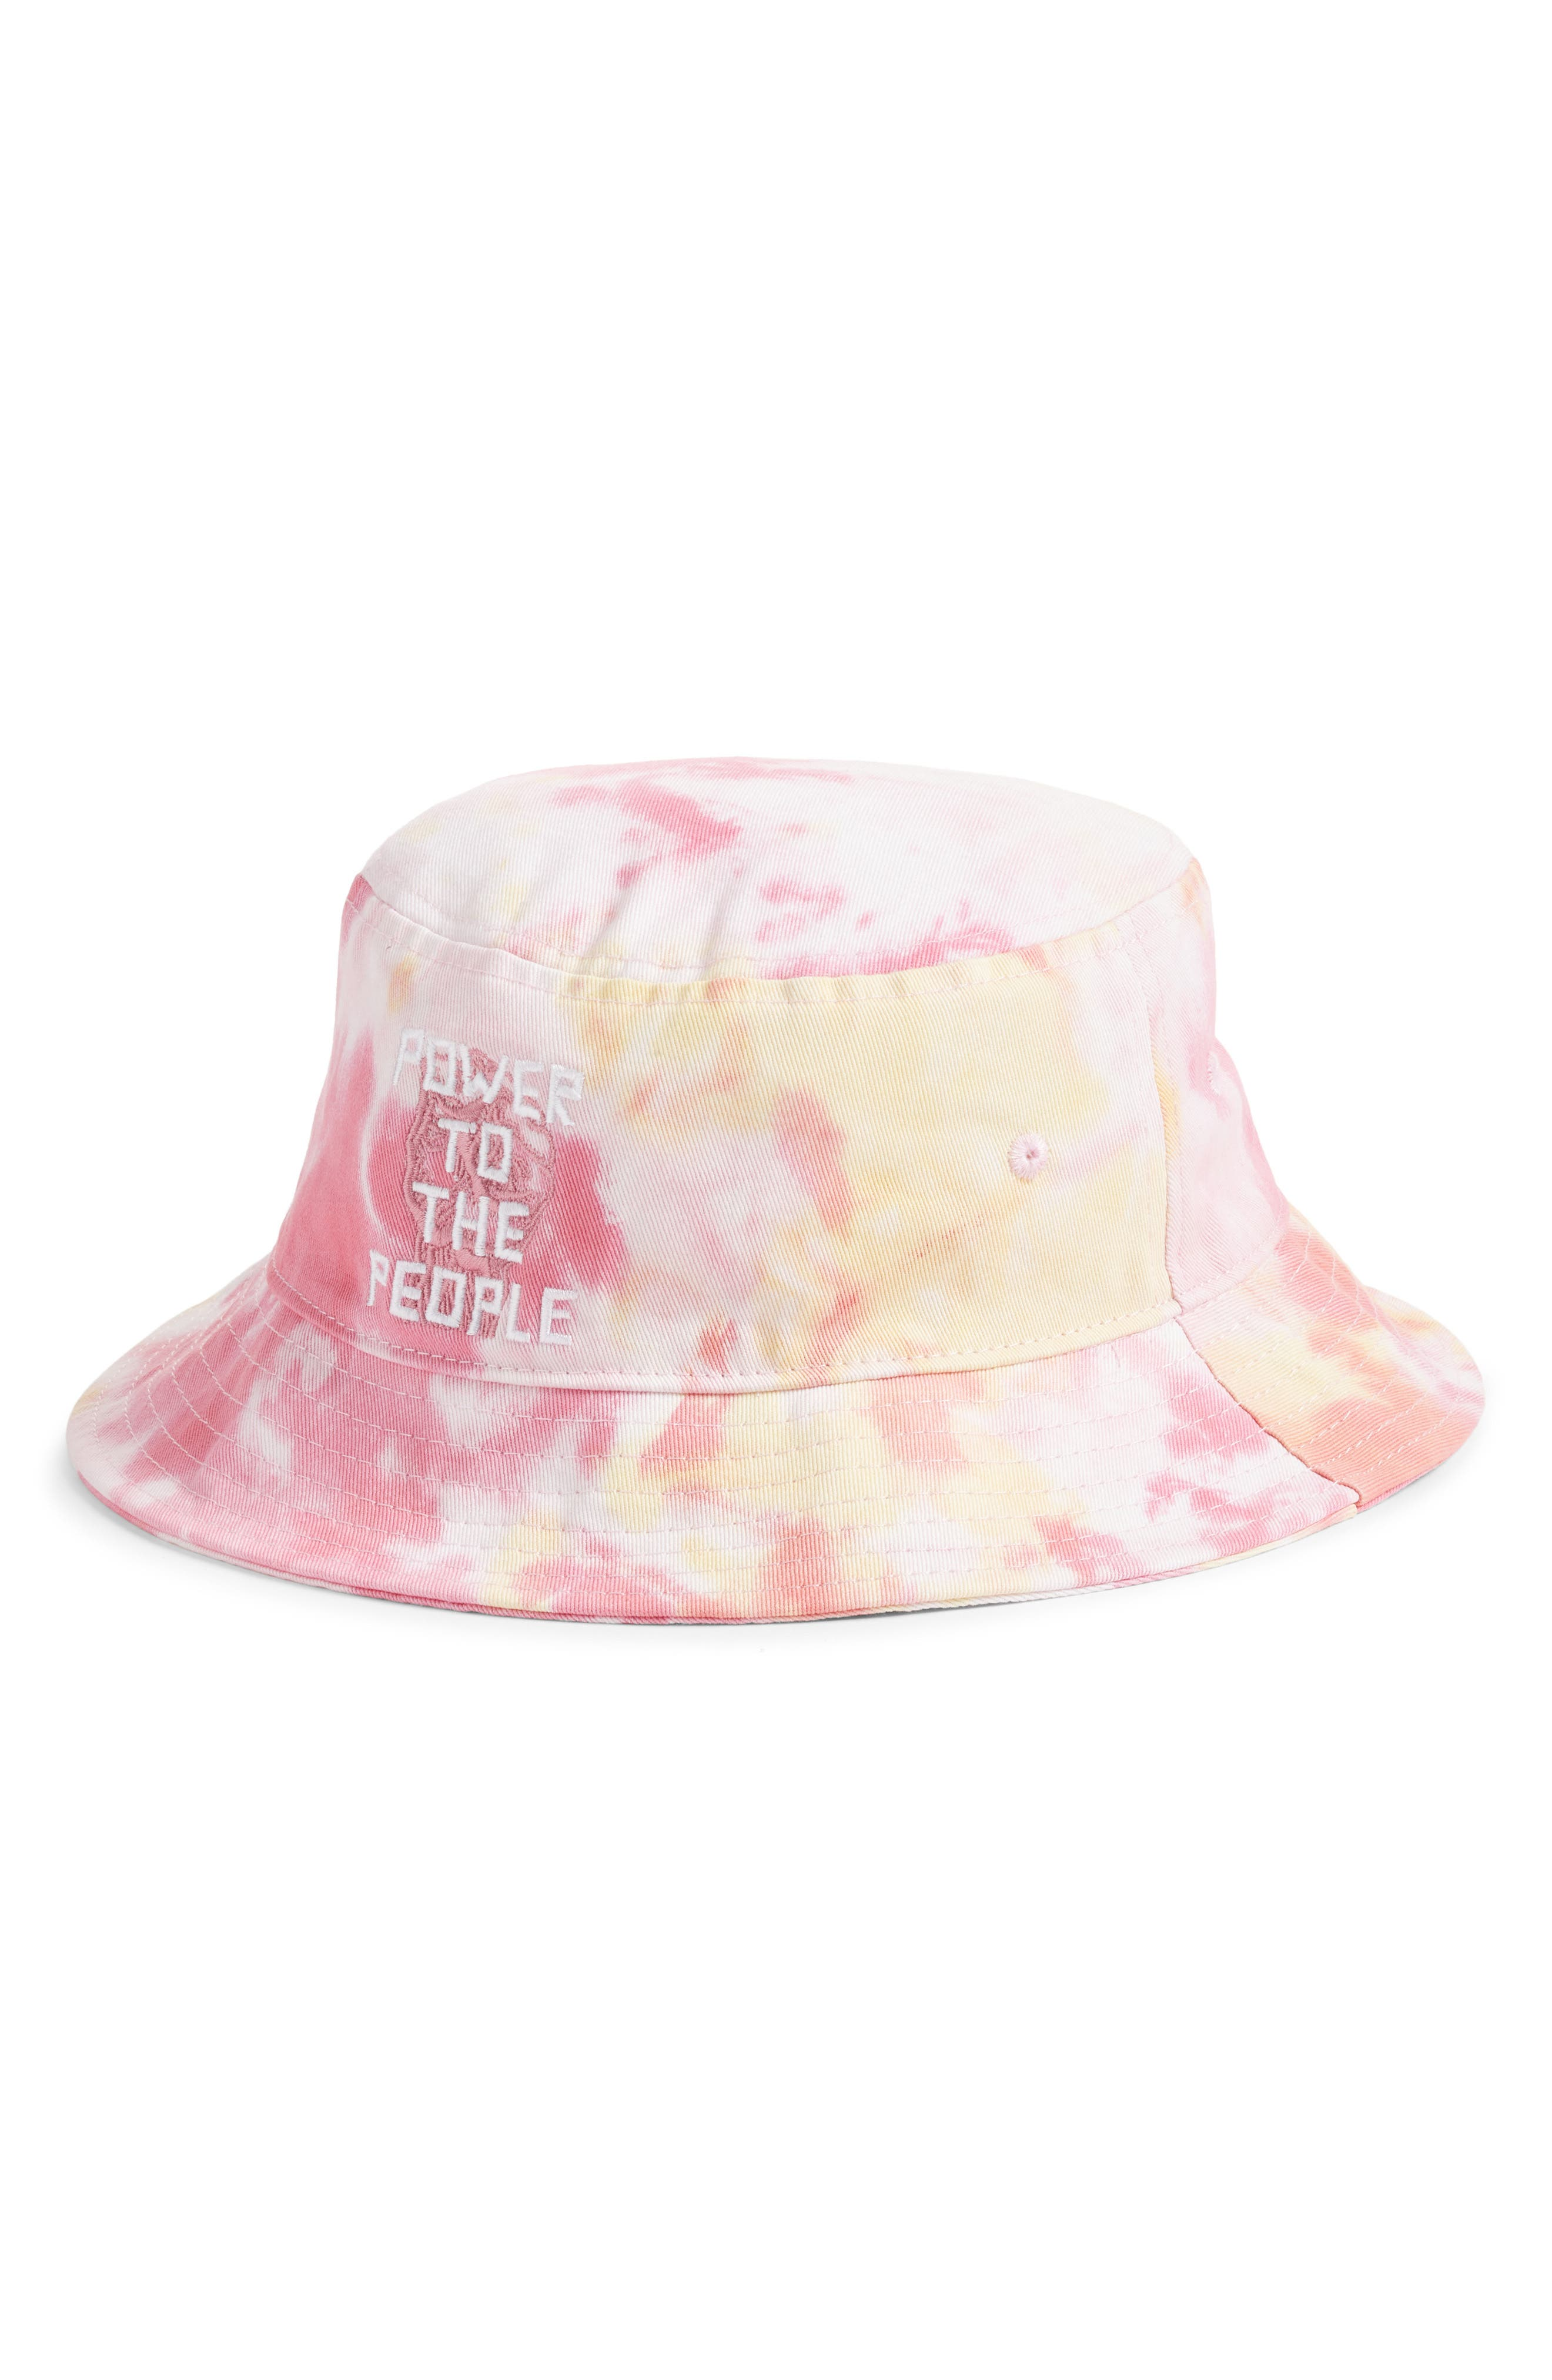 Power To The People Bucket Hat